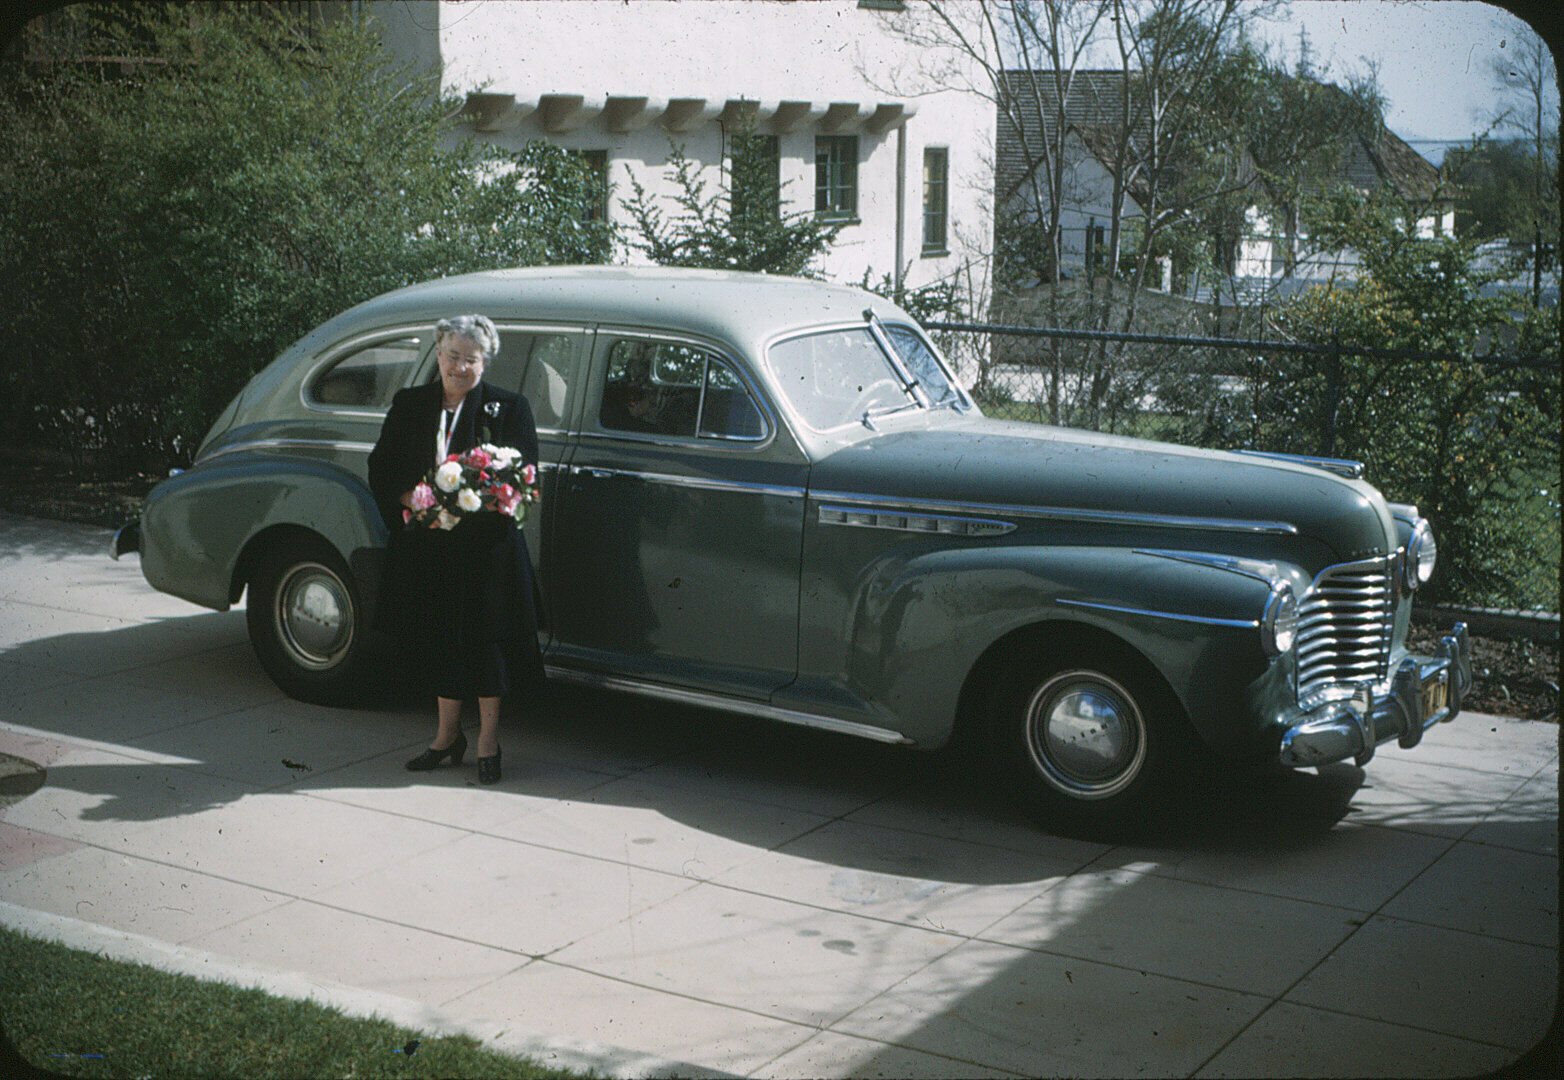 Image 1 - 1941-Buick-One-35-mm-Red-Border-Kodchromes-Slide